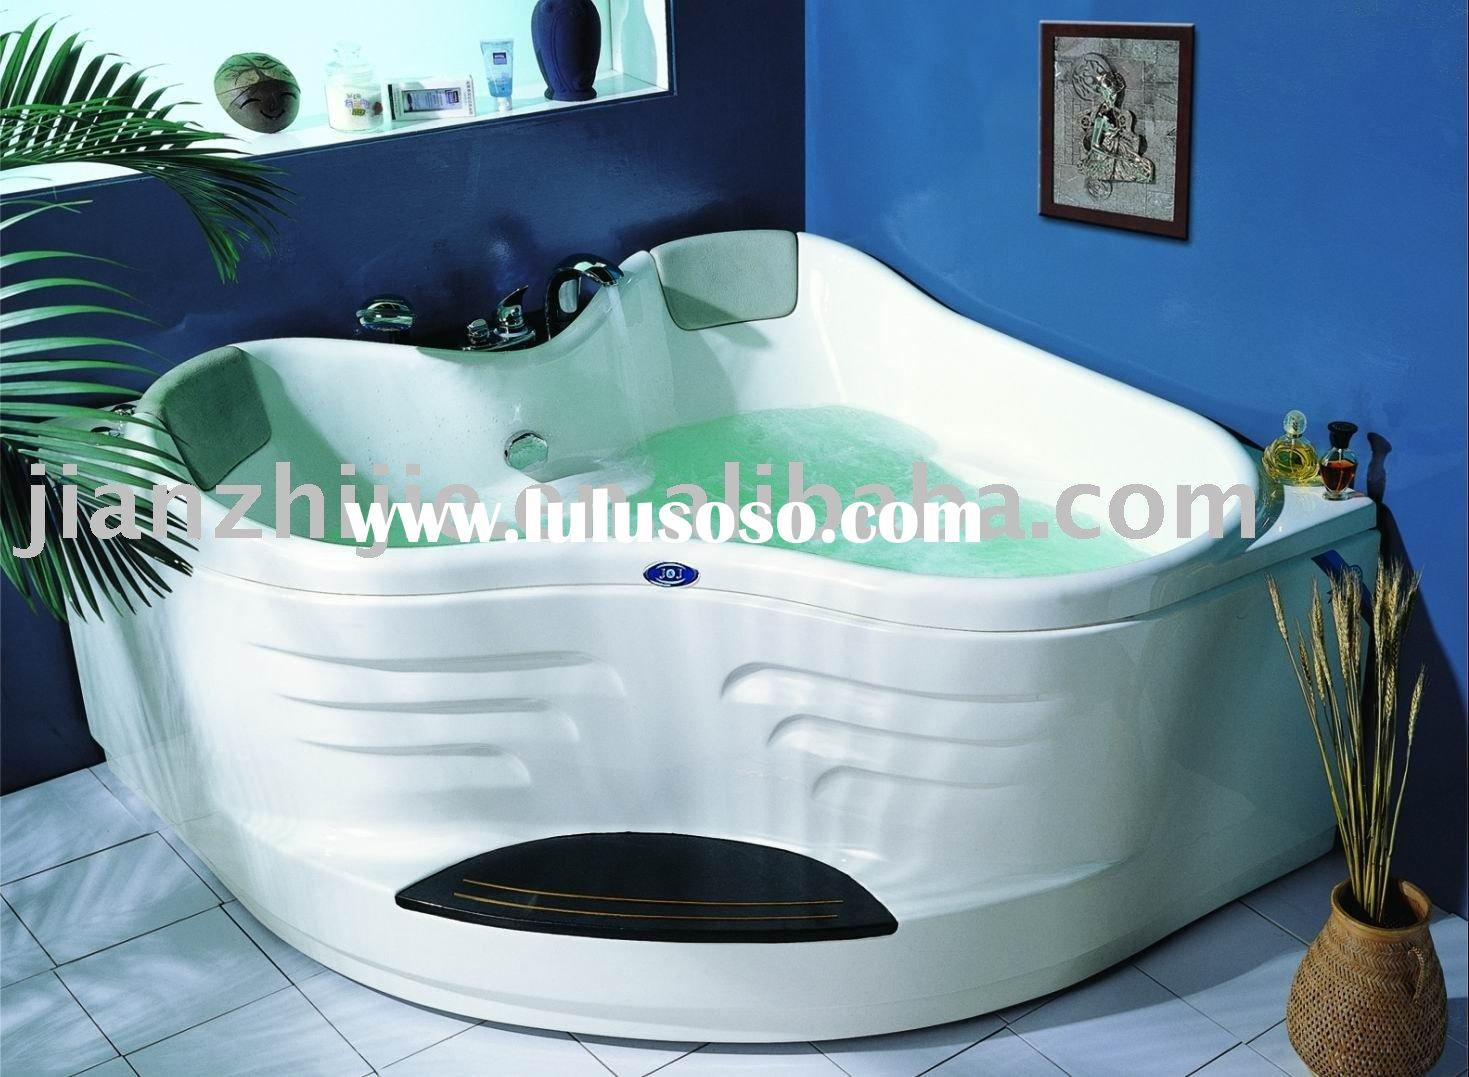 whirlpool jacuzzi massage bathtub, whirlpool jacuzzi massage ...